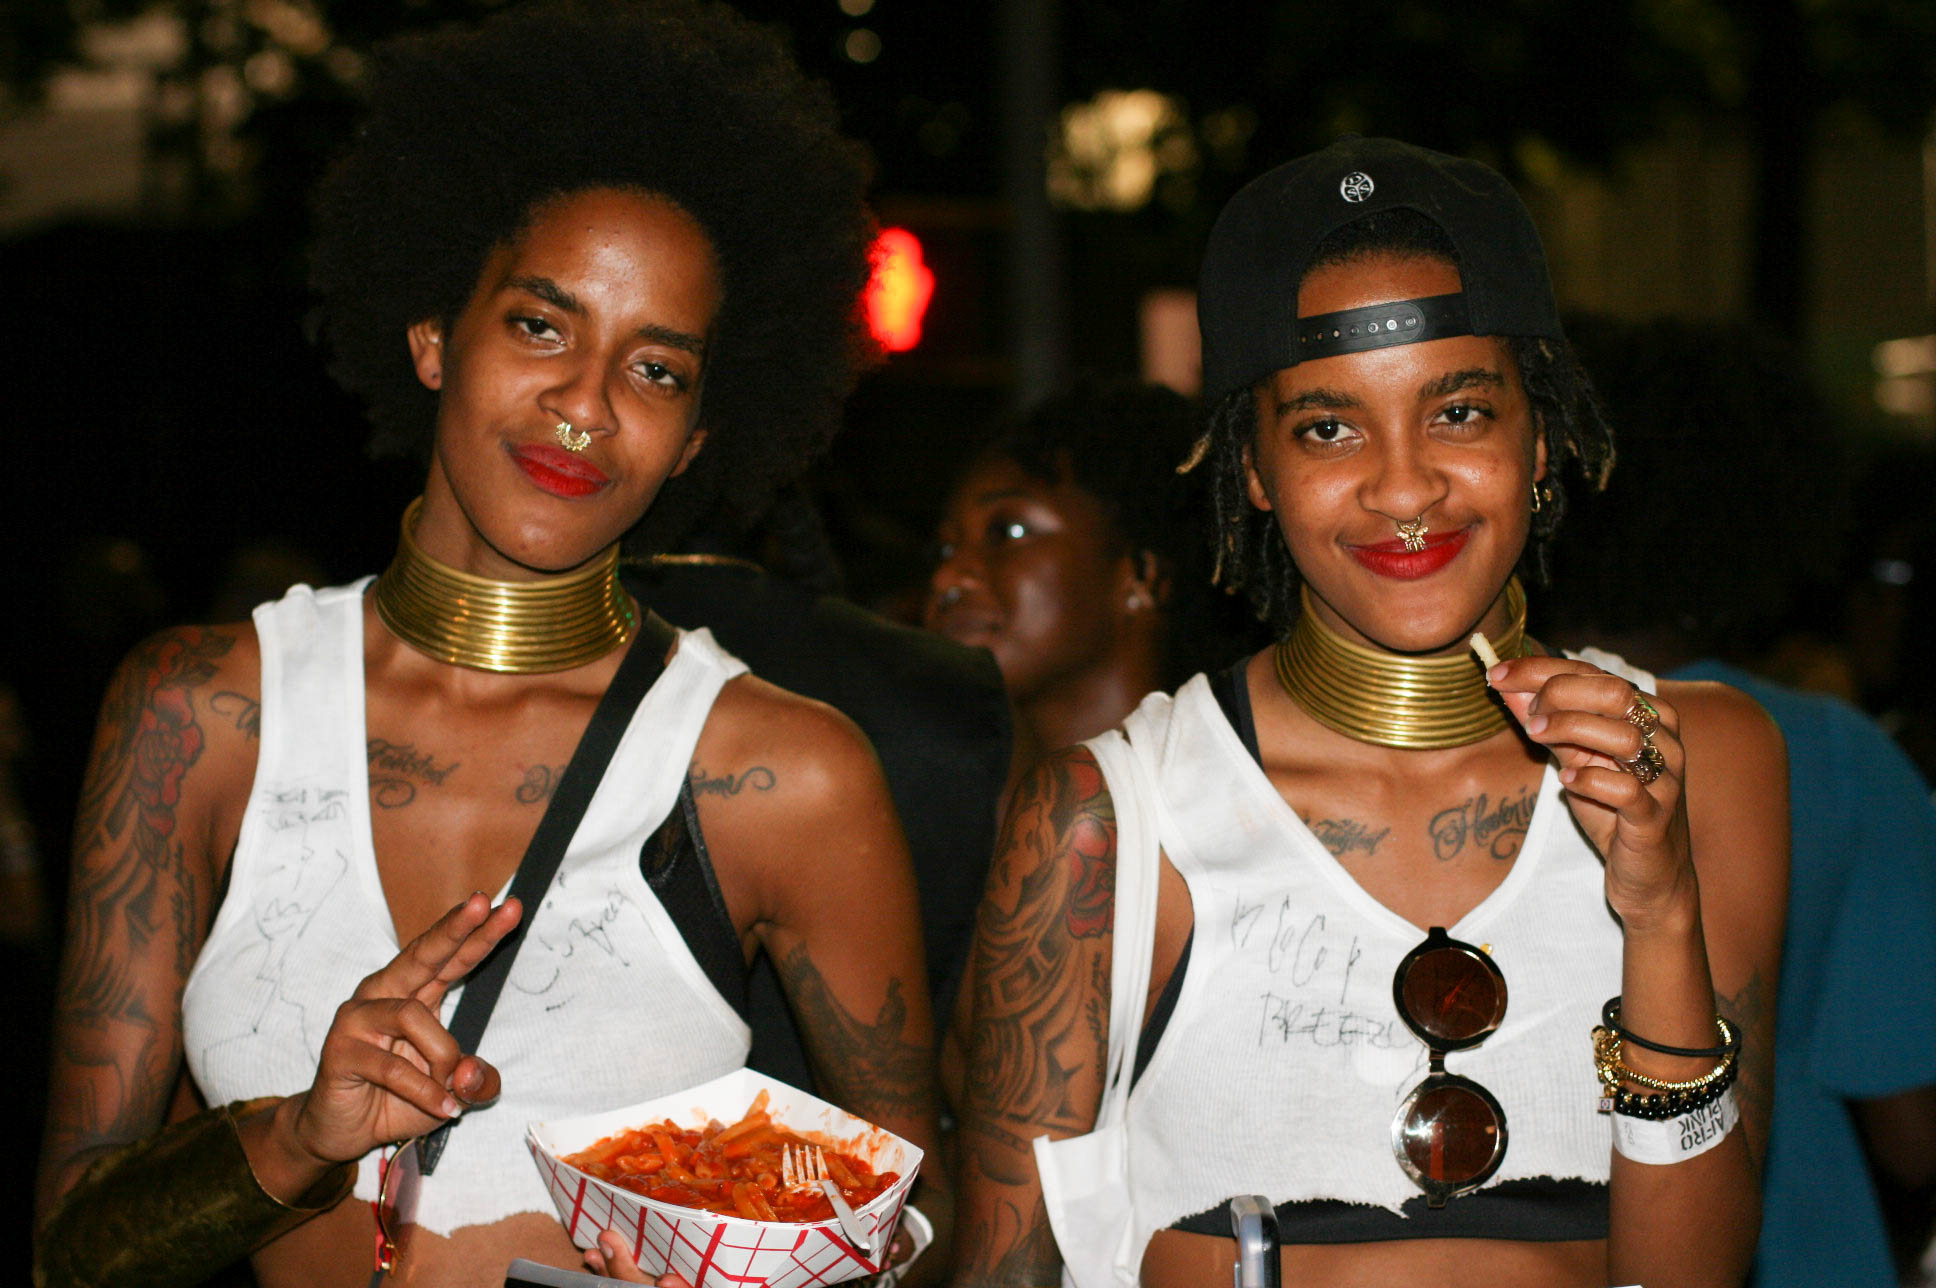 @cocoandbreezy at #afropunkfest .